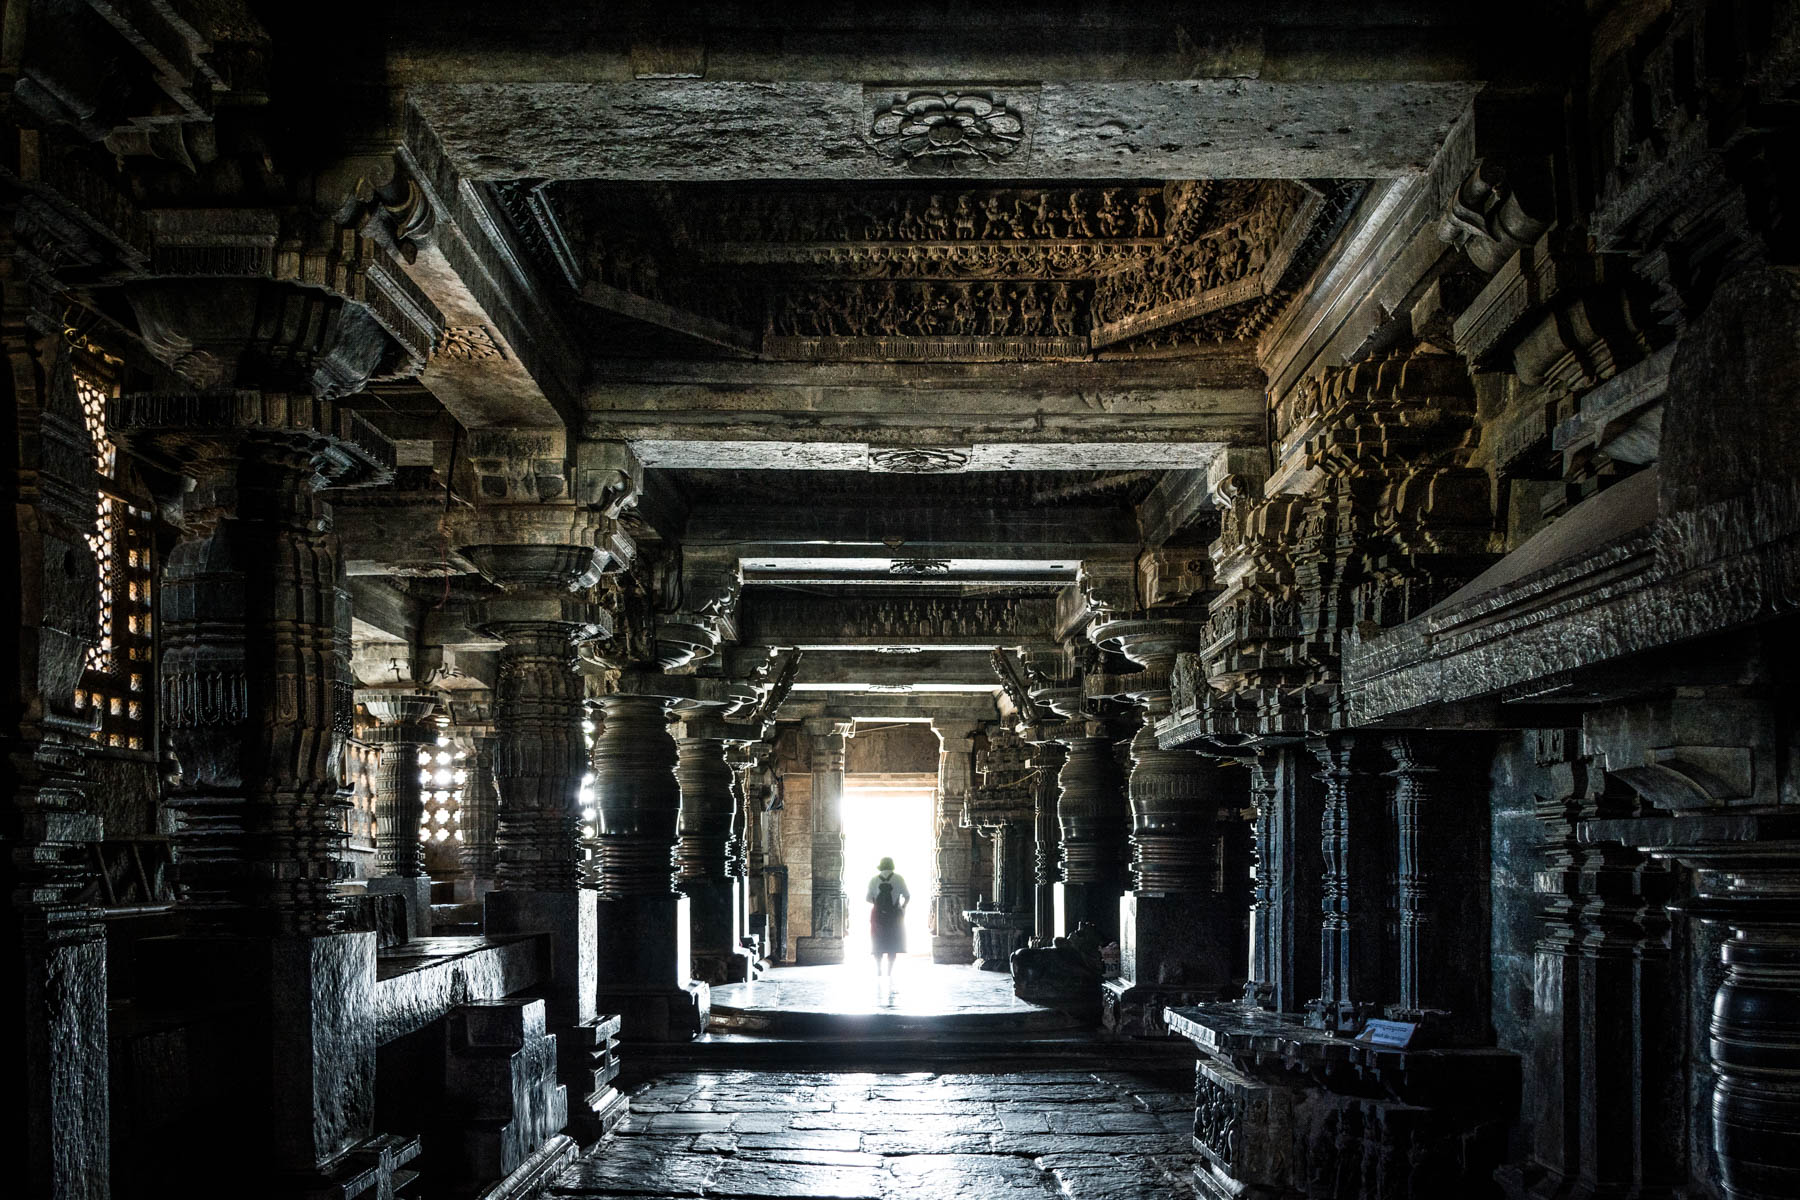 Off the beaten track places to visit in Karnataka, India - The strikingly dark interior of the Hoyaleshwara temple in Halebidu, India - Lost With Purpose